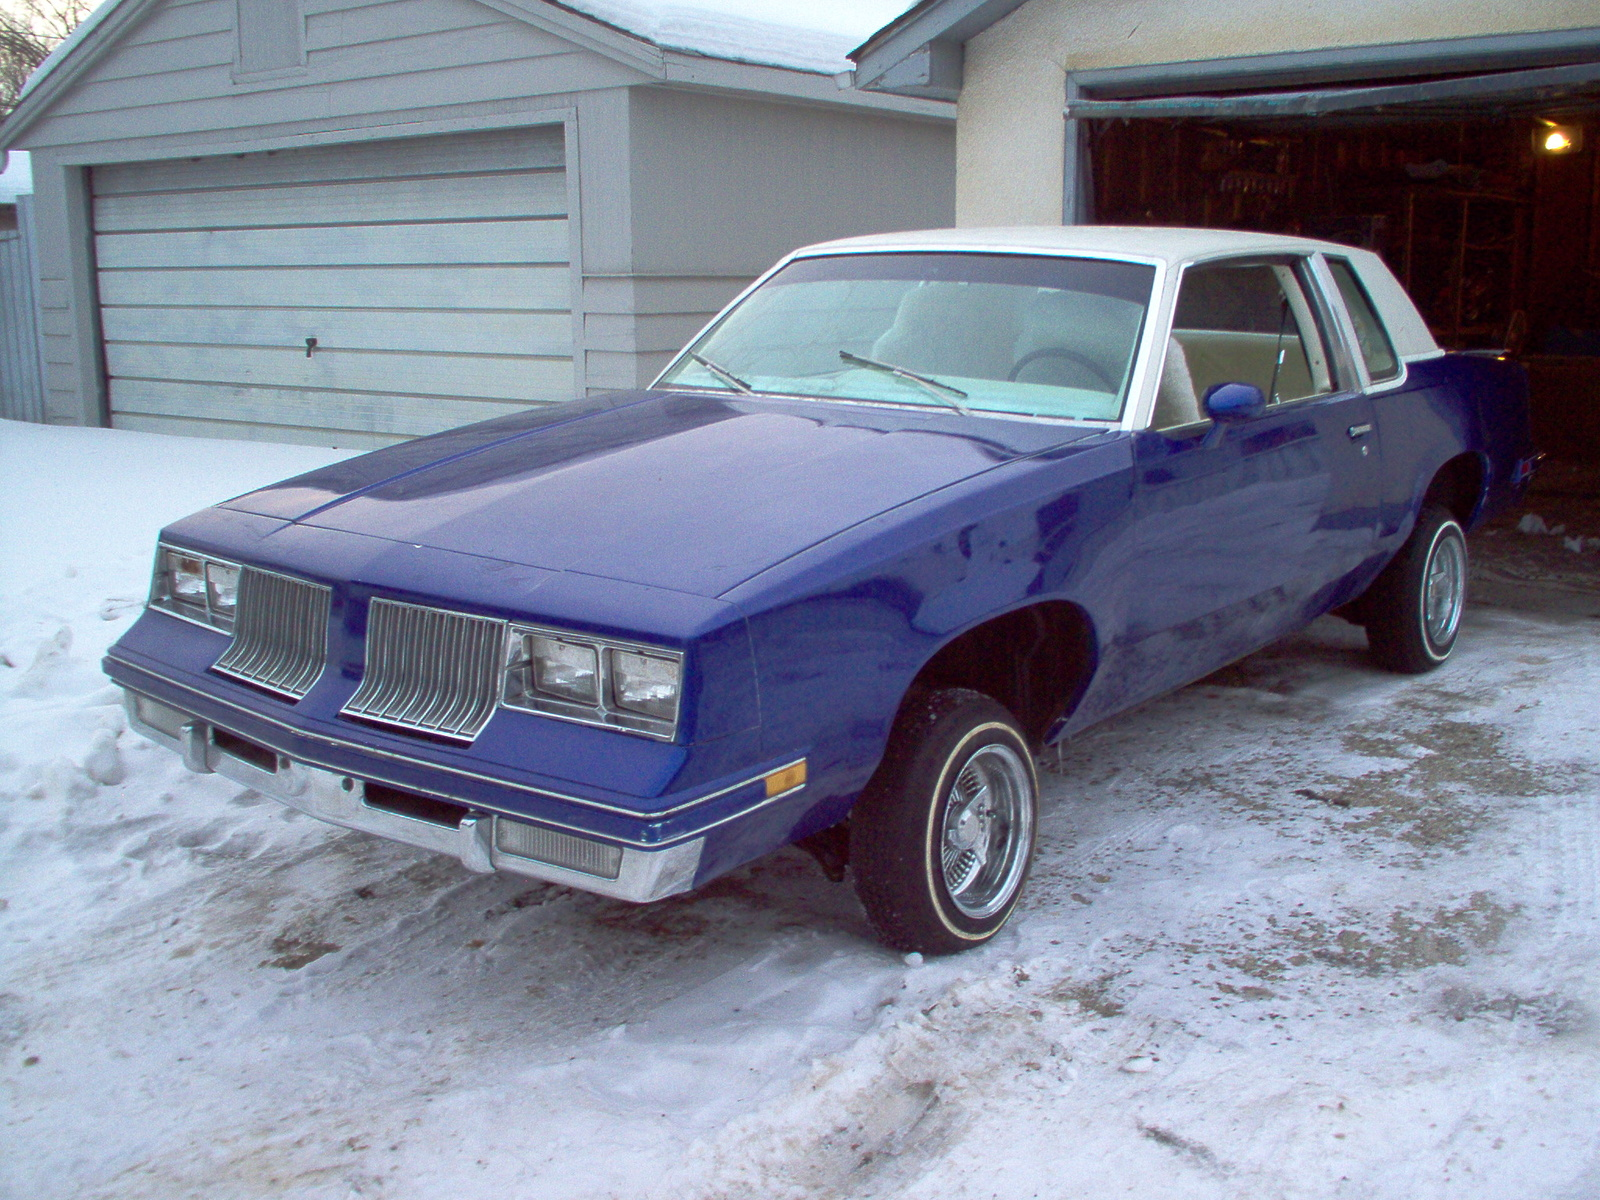 1984 Oldsmobile Cutlass Supreme - Other Pictures - 1984 Oldsmobile ...